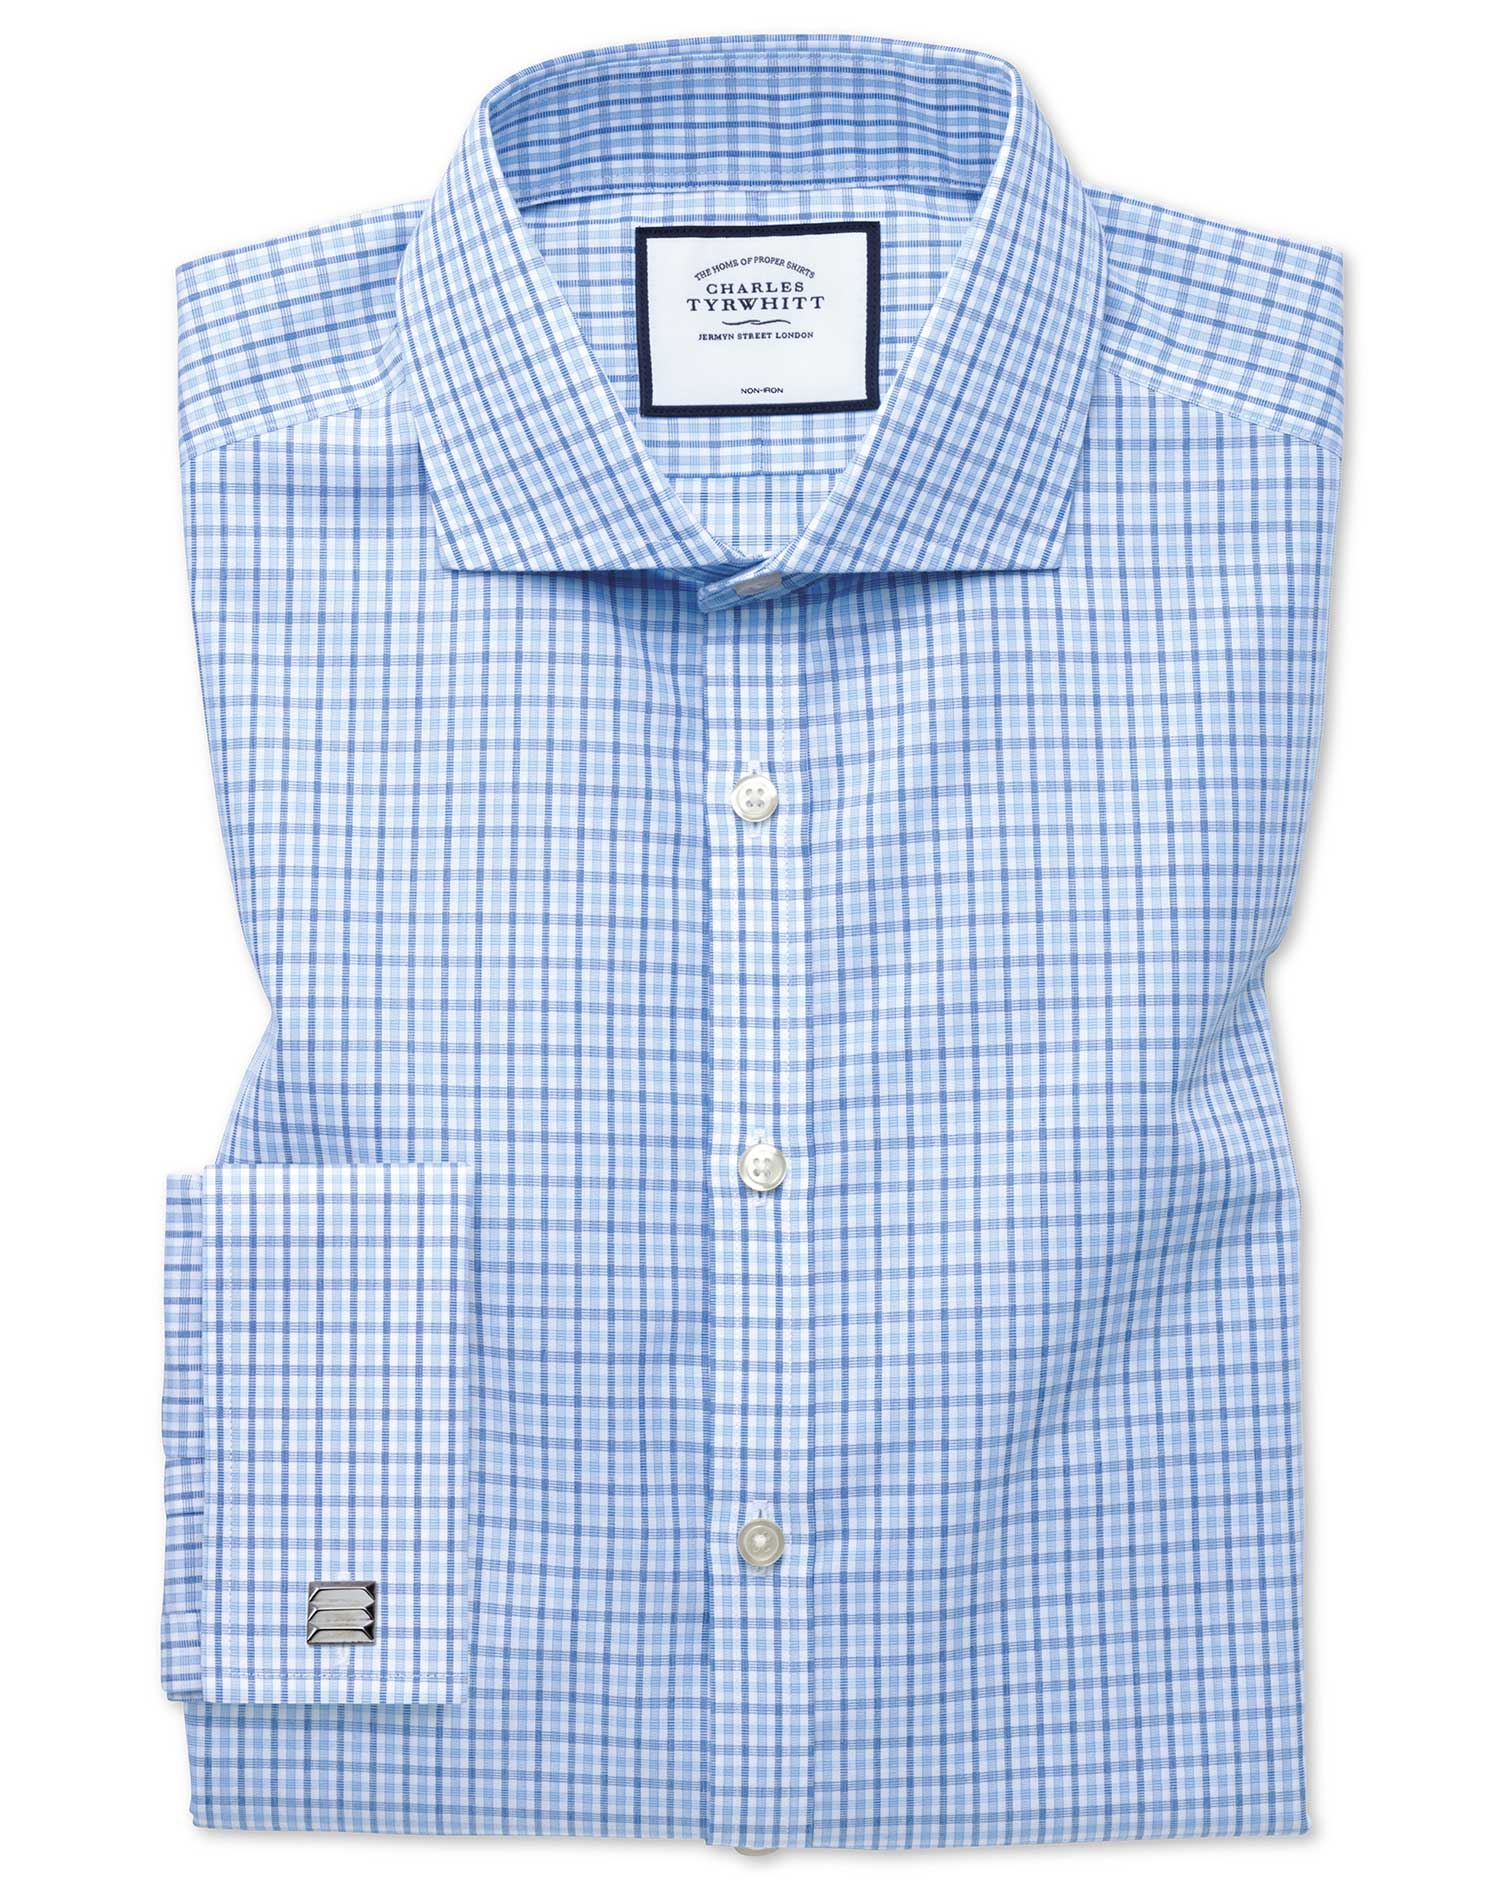 Extra Slim Fit Cutaway Non-Iron Poplin Blue and Sky Blue Cotton Formal Shirt Single Cuff Size 16.5/3